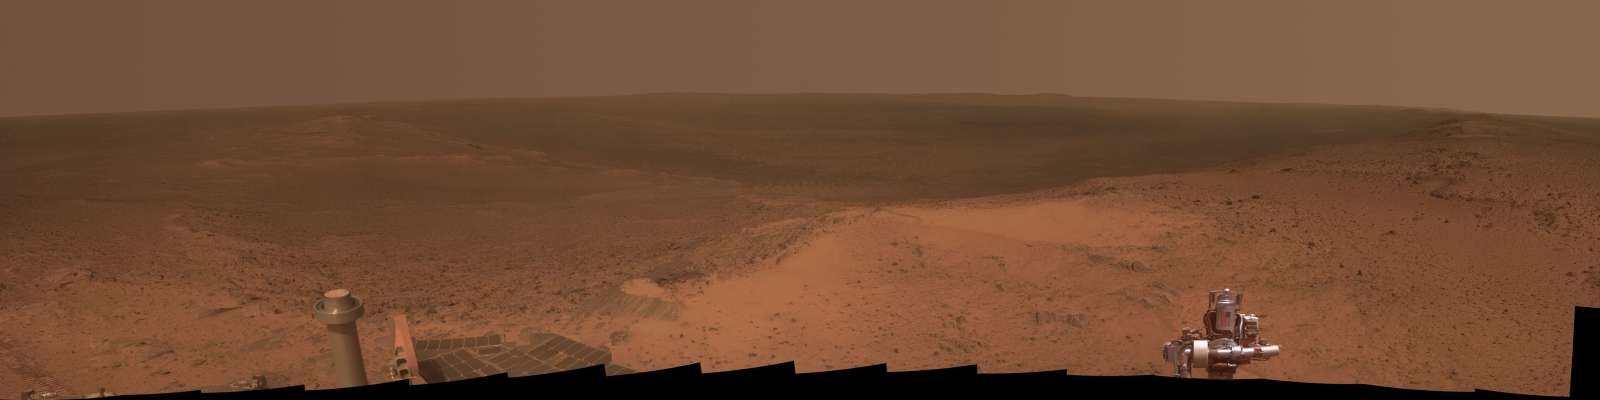 "Opportunity's view of ""Cape Tribulation"" ‒ a raised section of the rim of Endeavour Crater"